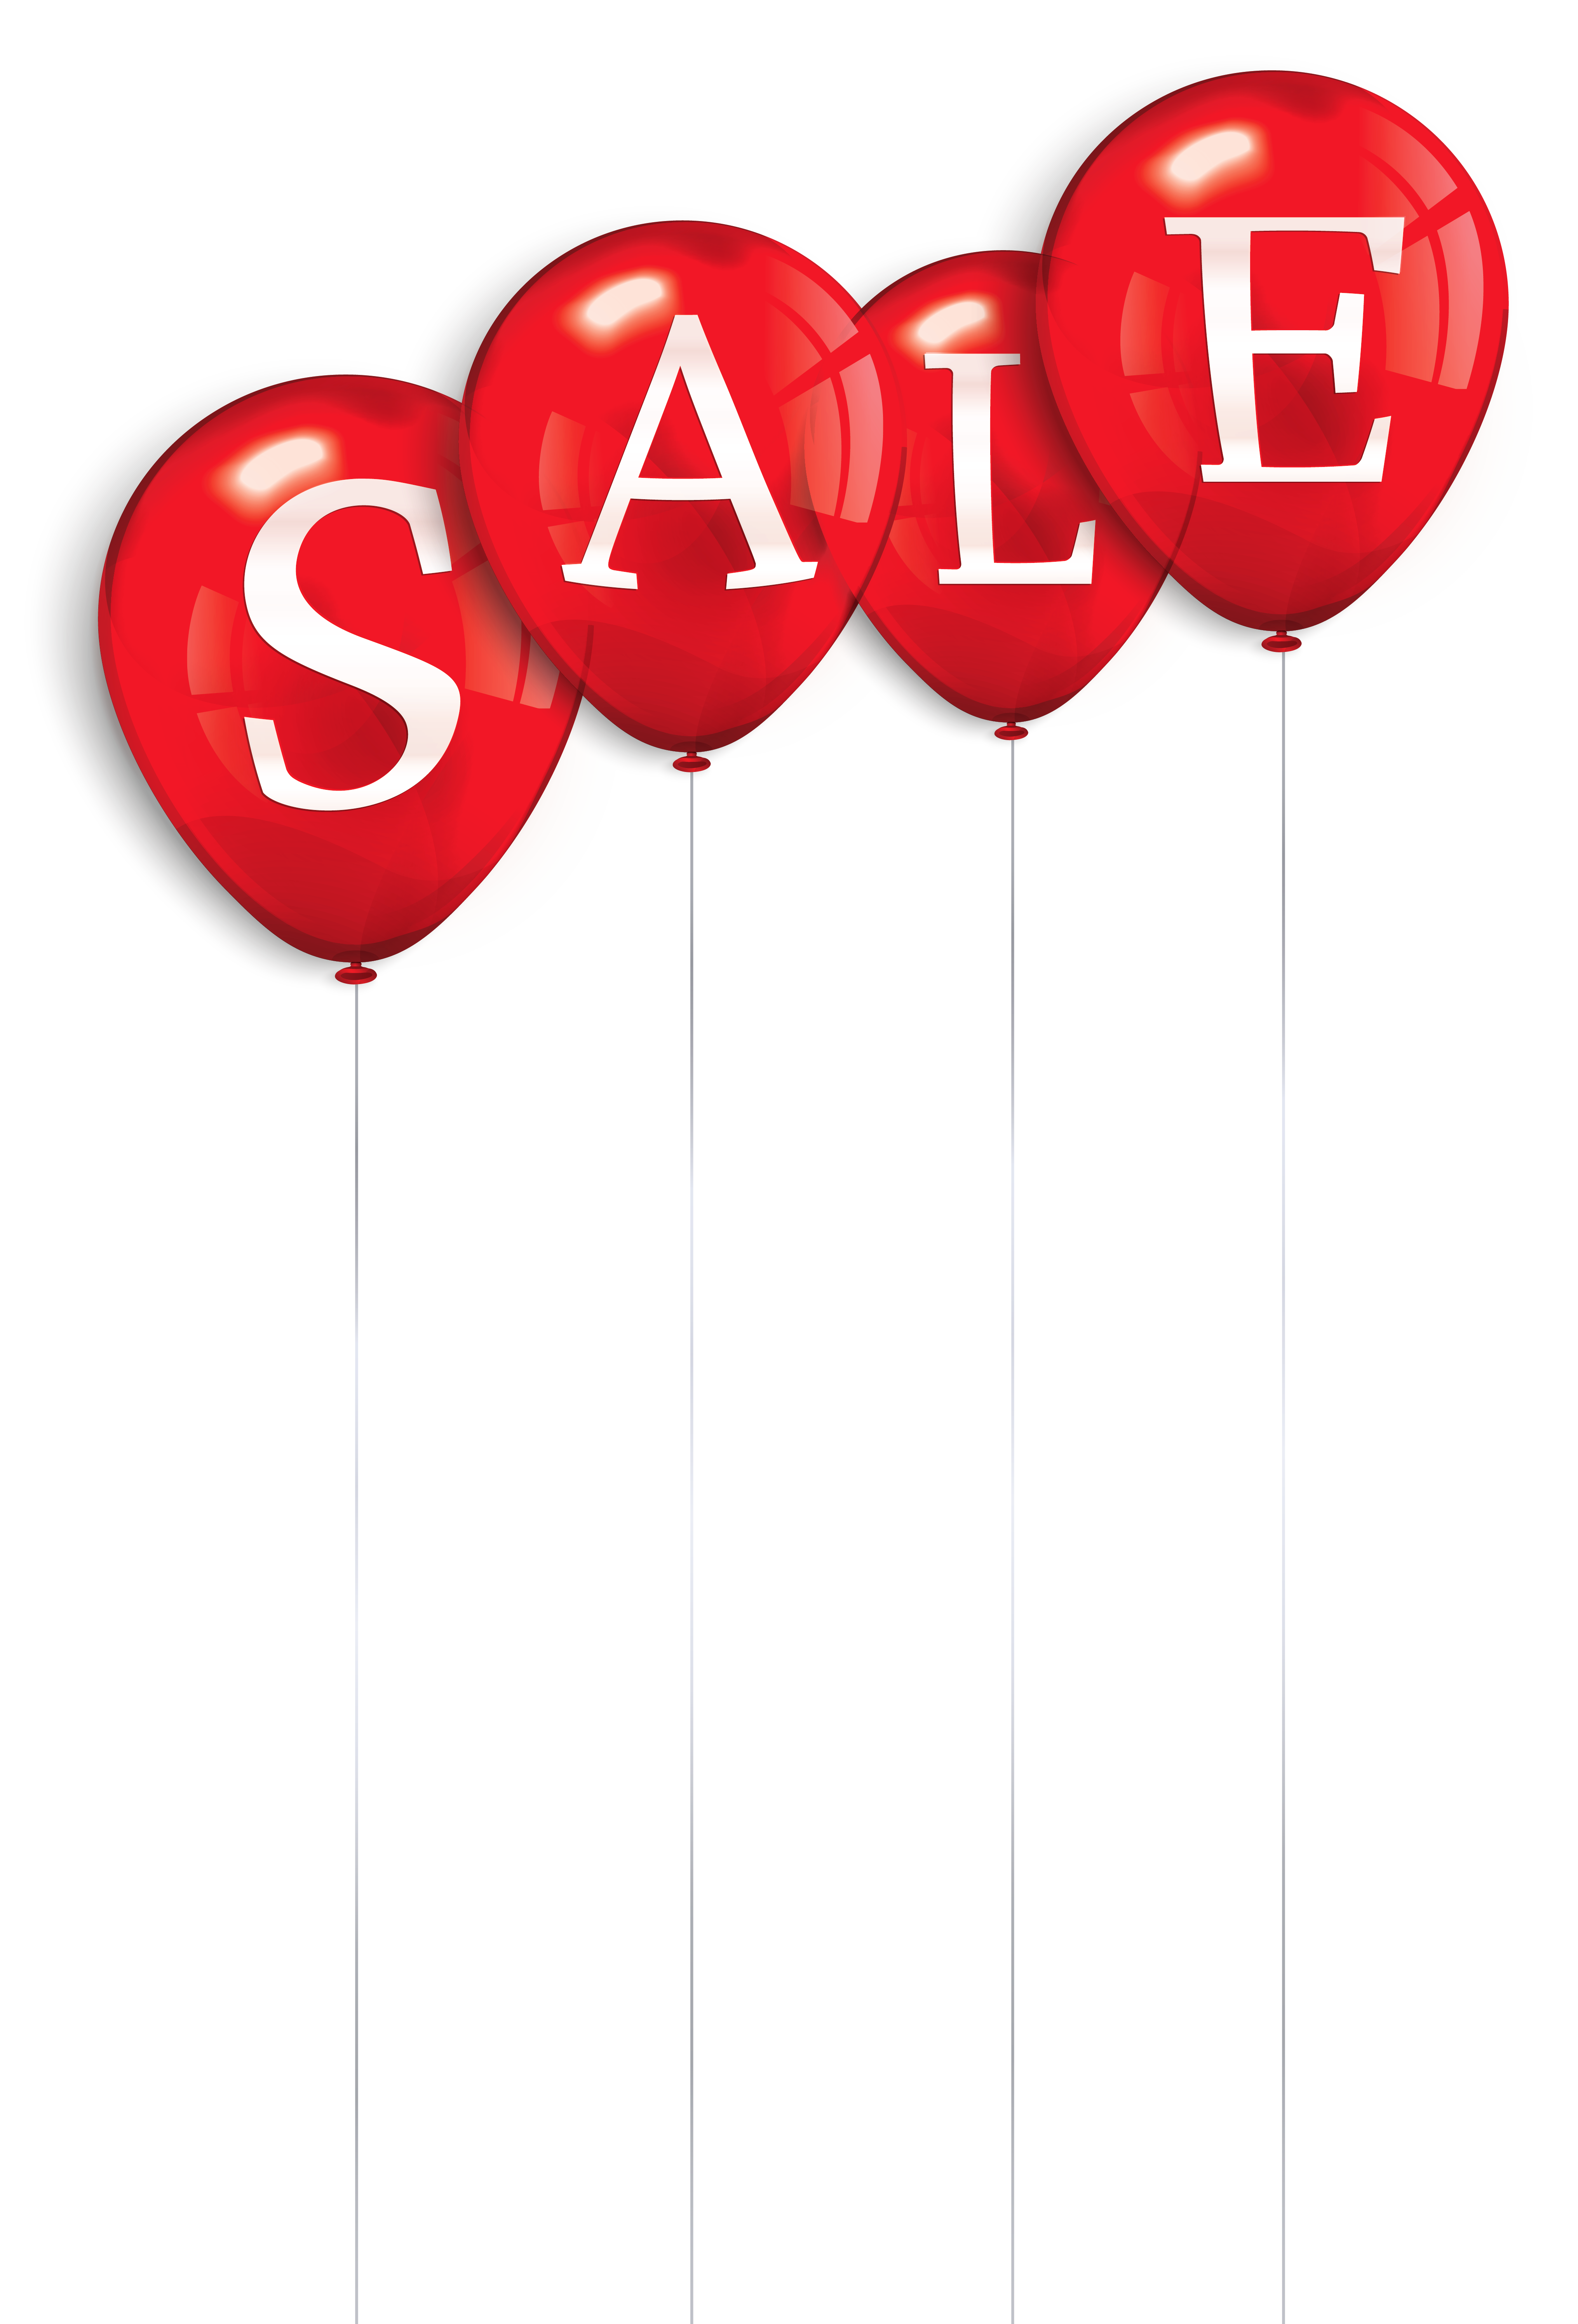 Balloons sale png image. Clipart balloon gate